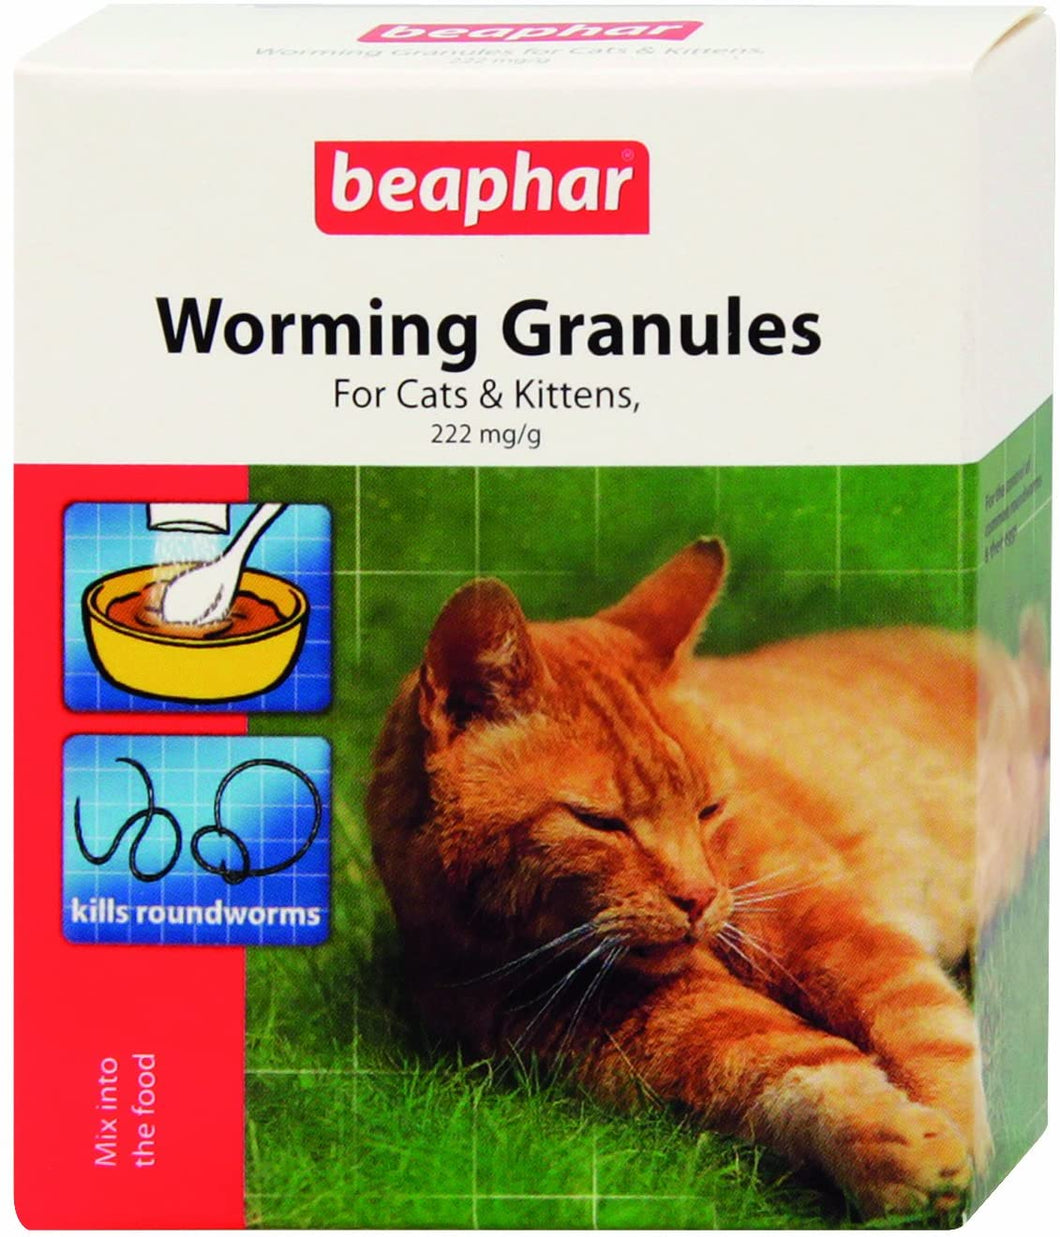 Beaphar Worming Granules for Cats & Kittens